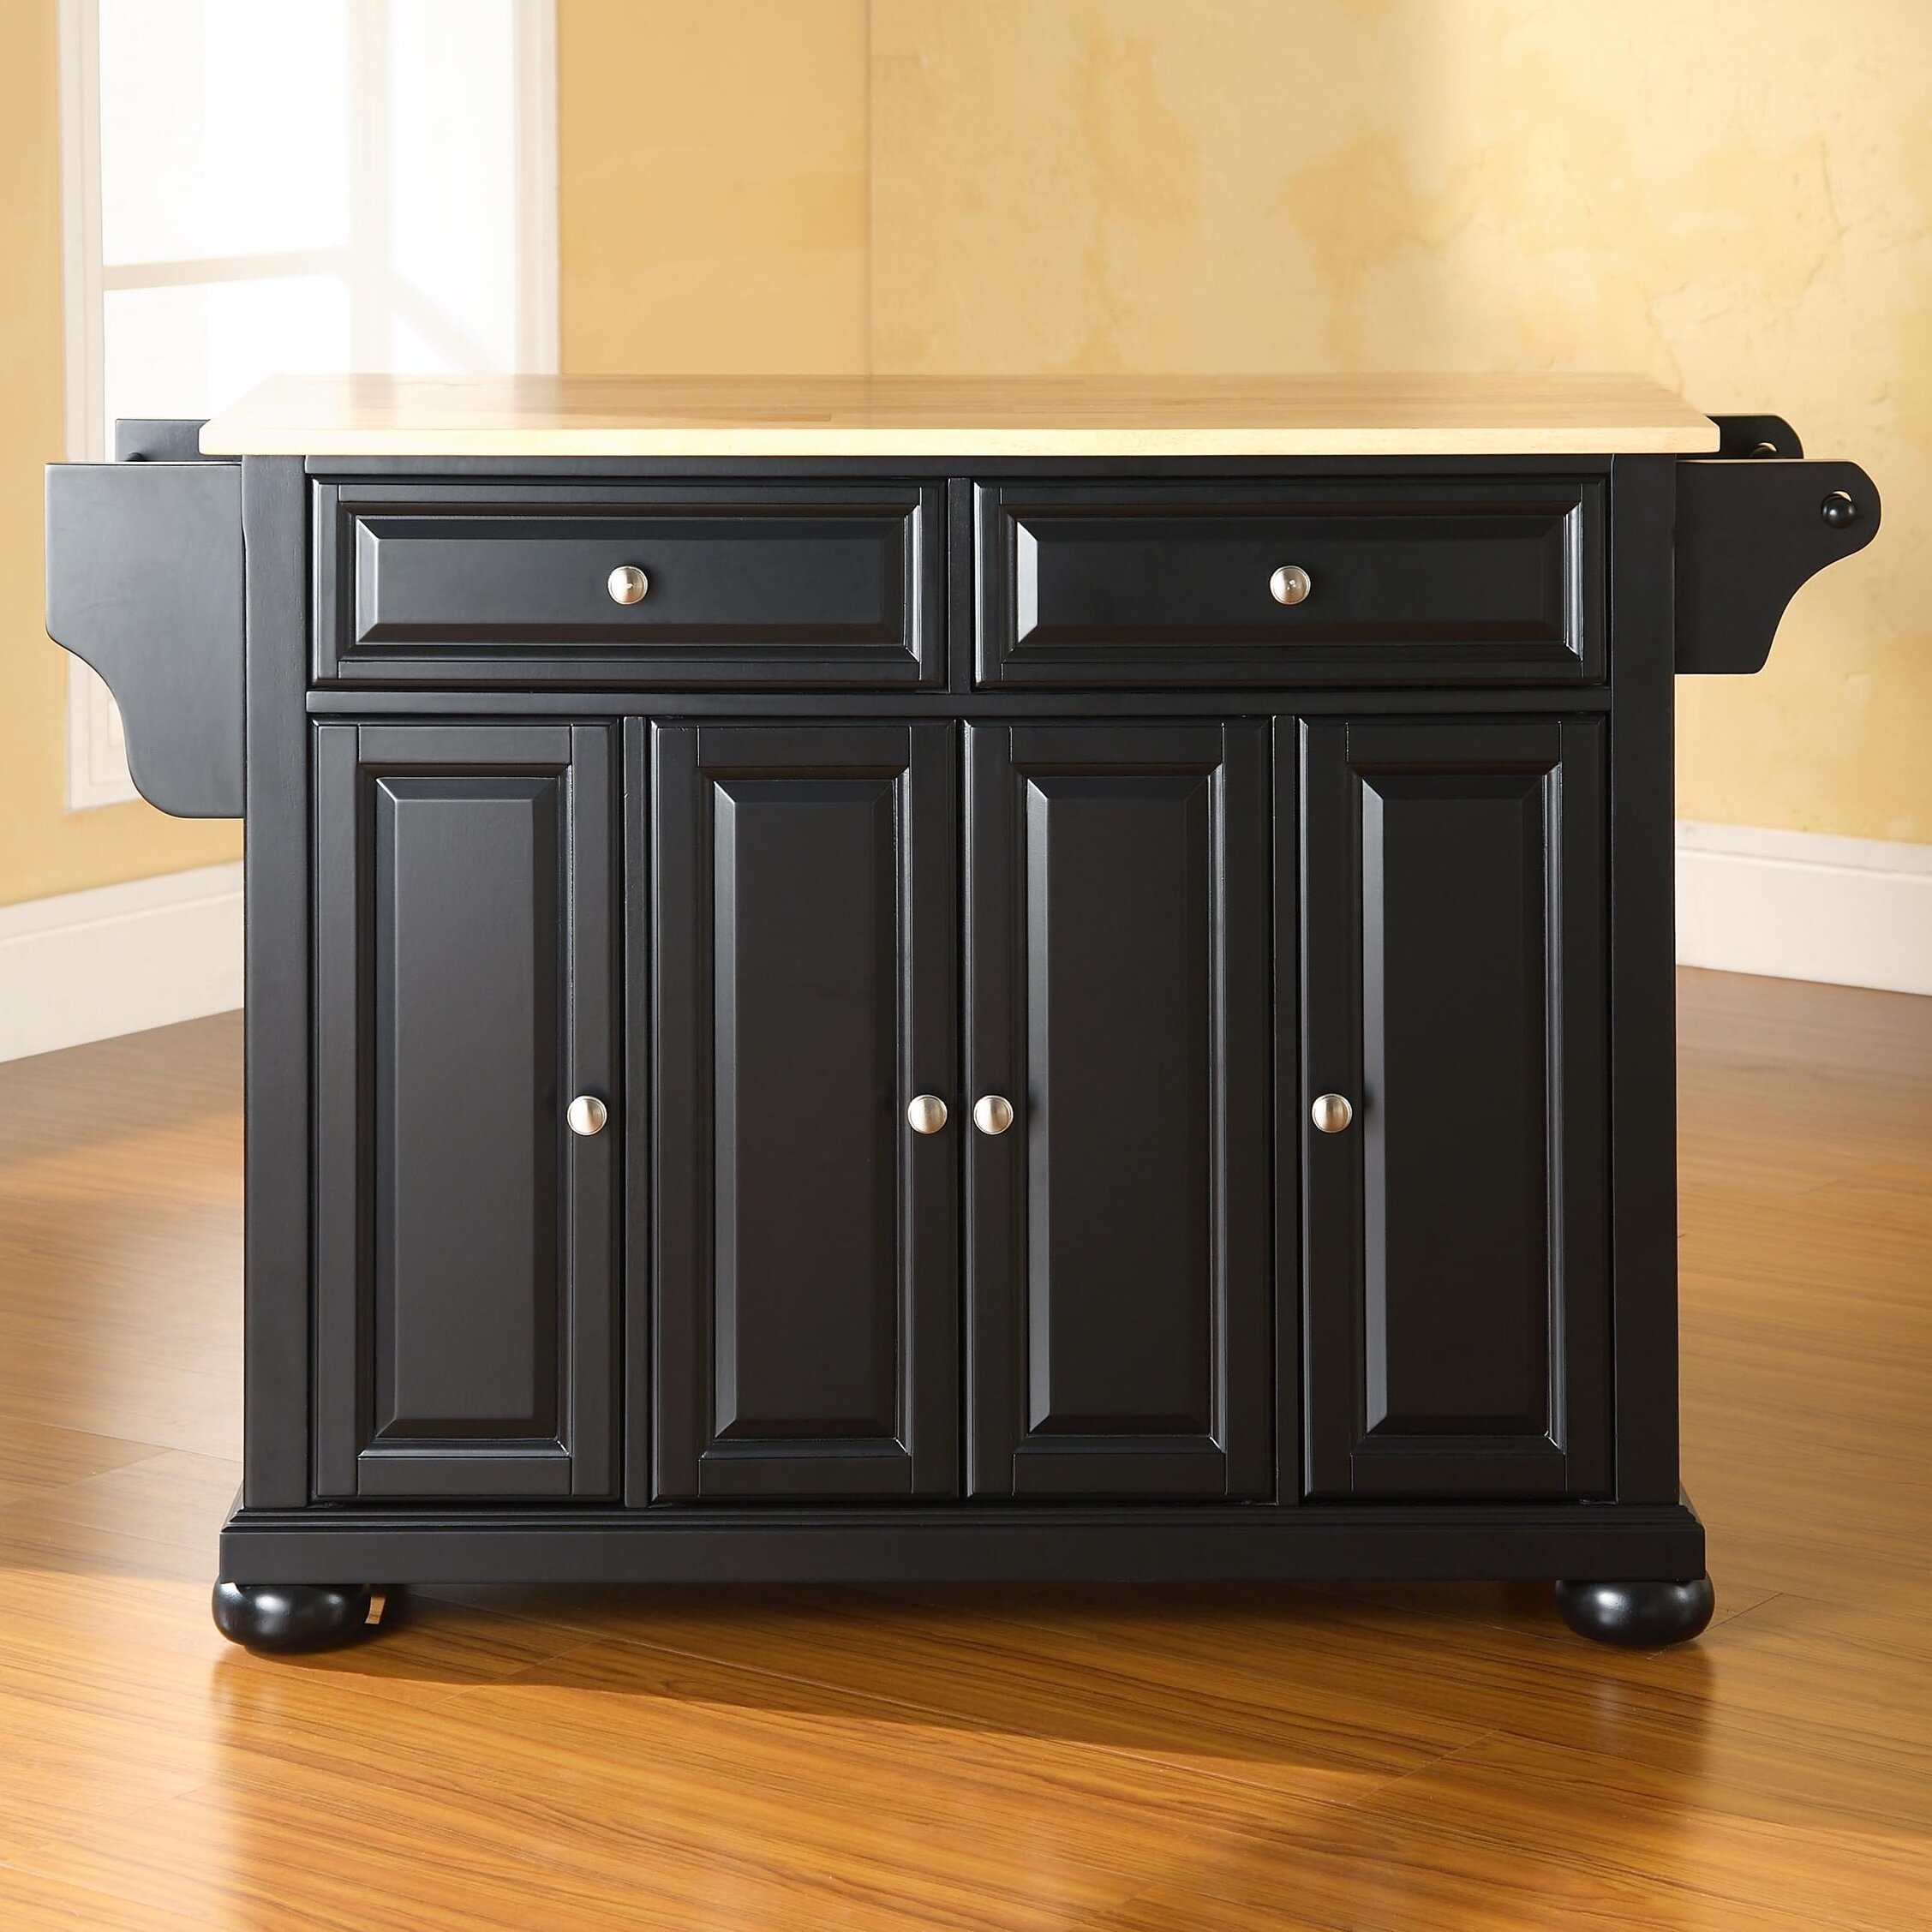 darby home co pottstown kitchen island with wood top & reviews